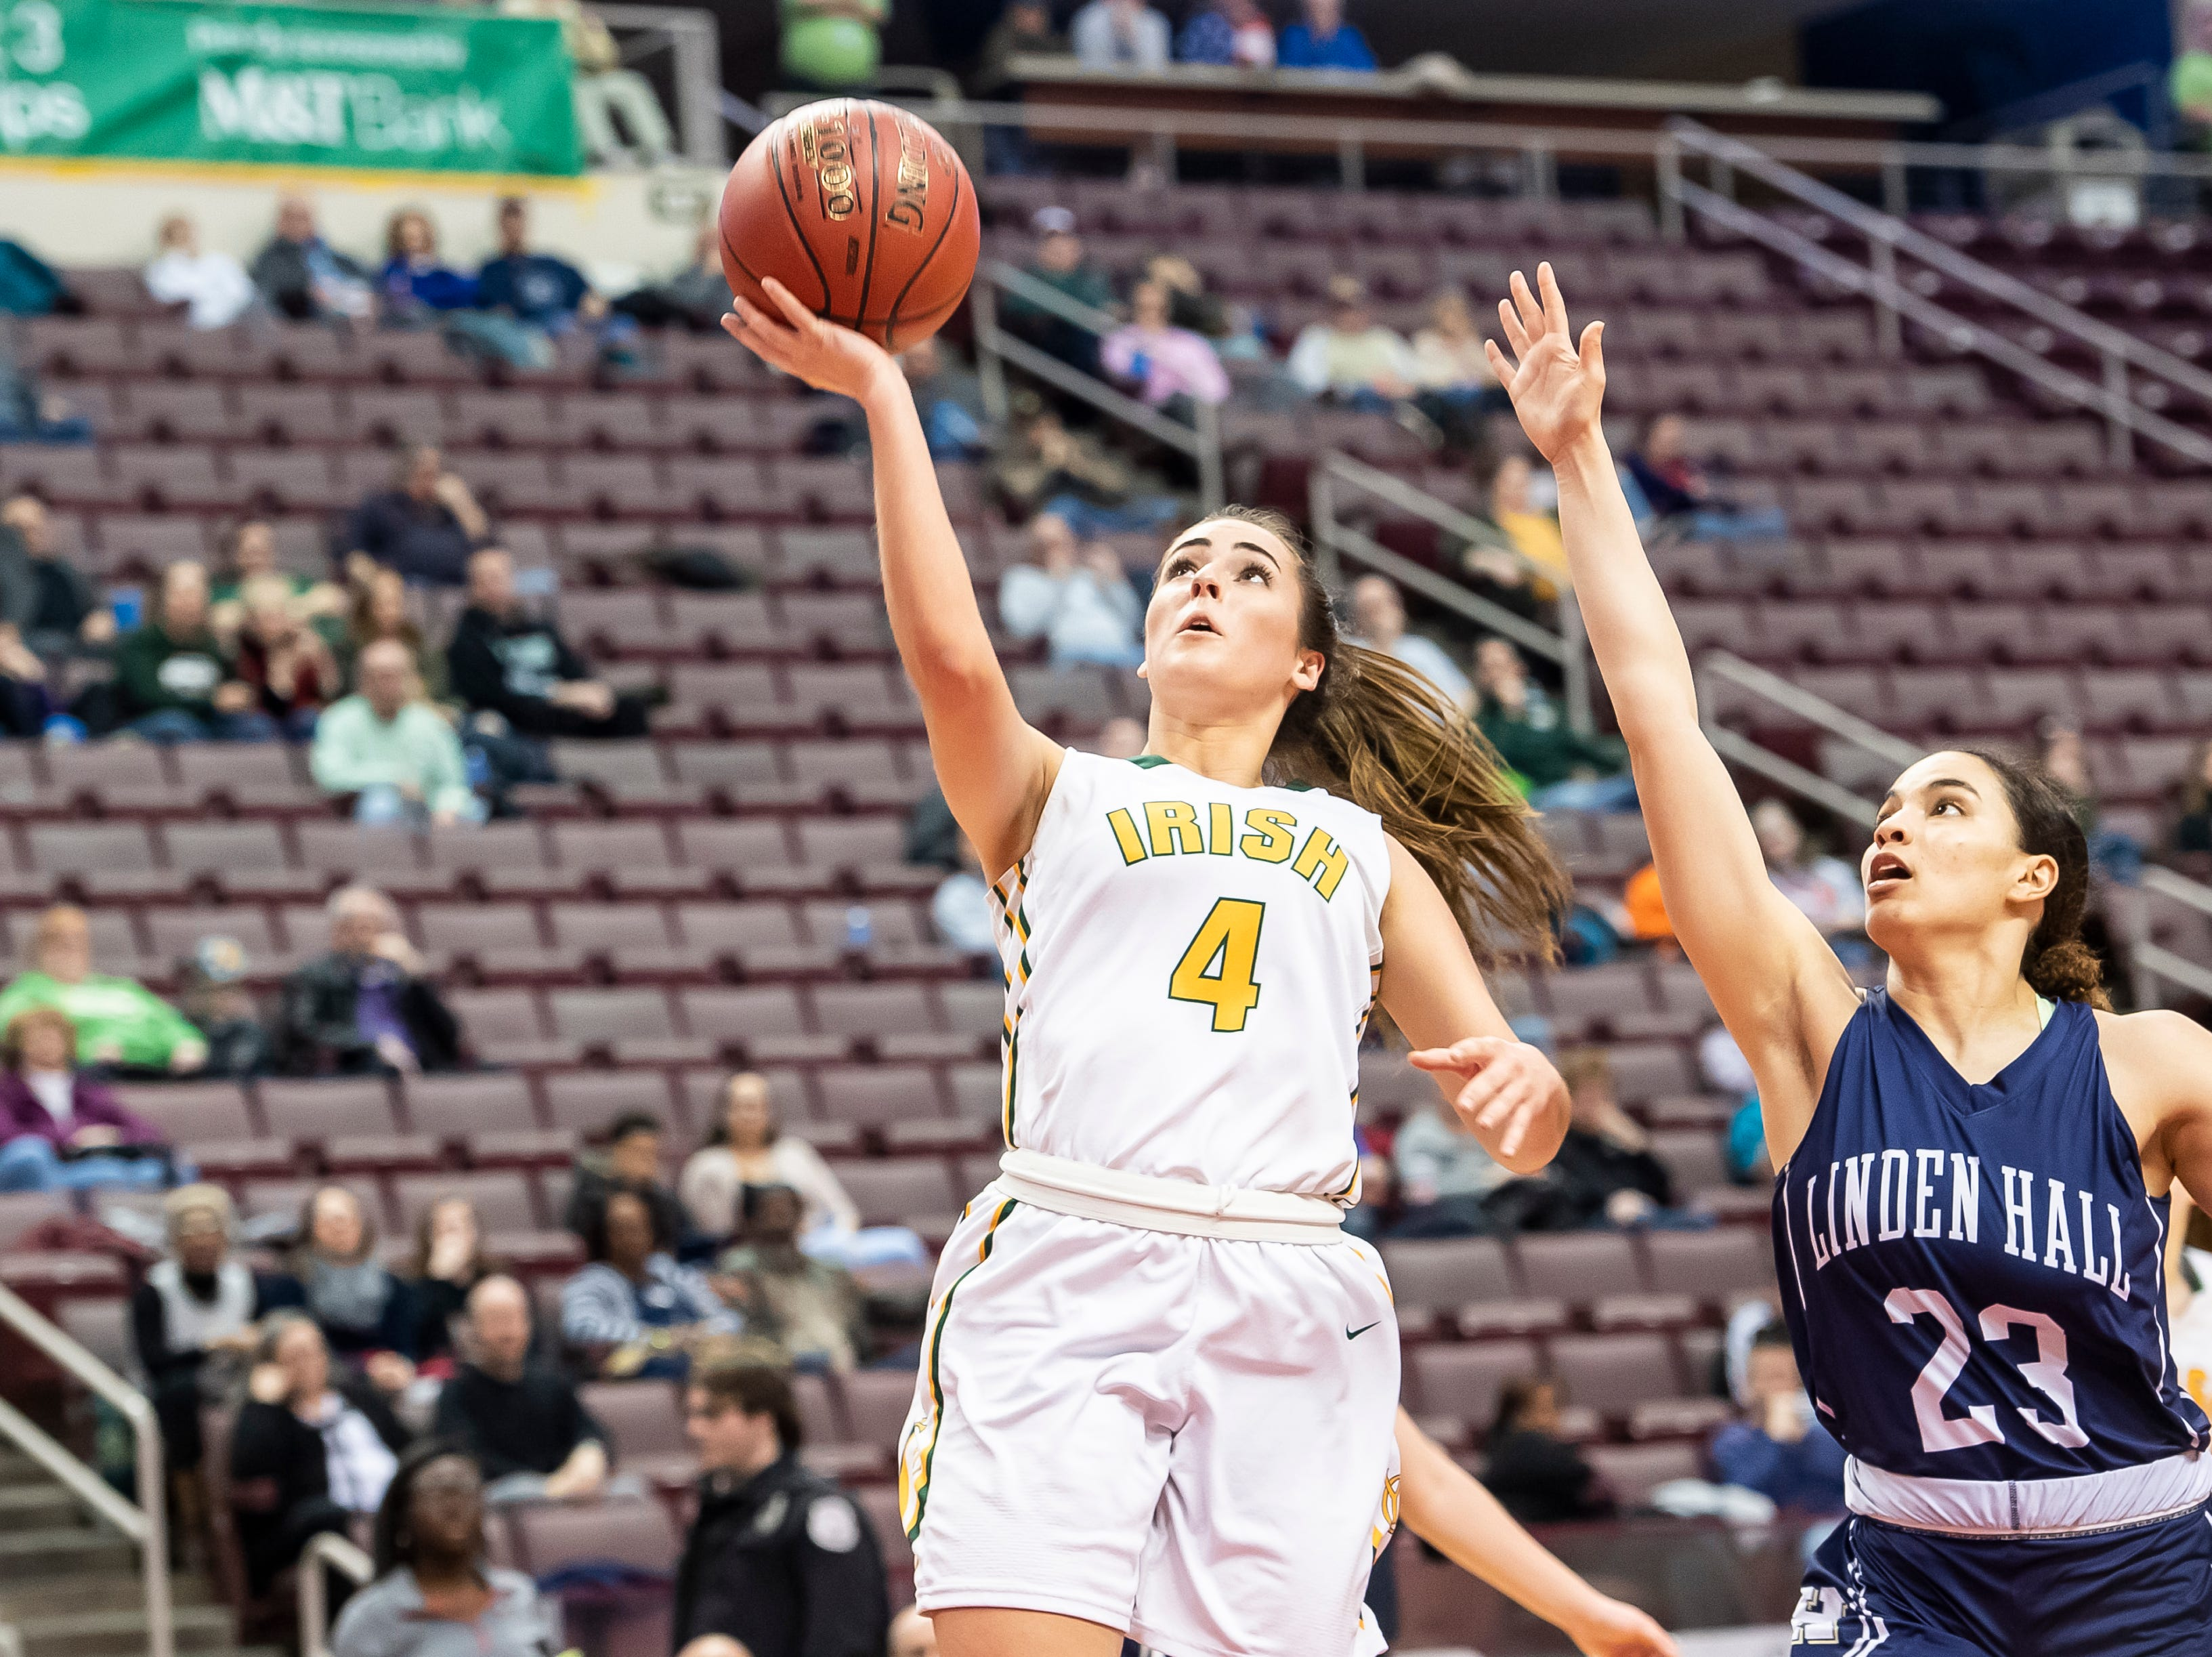 York Catholic's Gina Citrone shoots and scores on a layup during the District 3 2-A girls championship game against Linden Hall at the Giant Center in Hershey Tuesday, Feb. 26, 2019. The Fighting Irish fell 56-27.